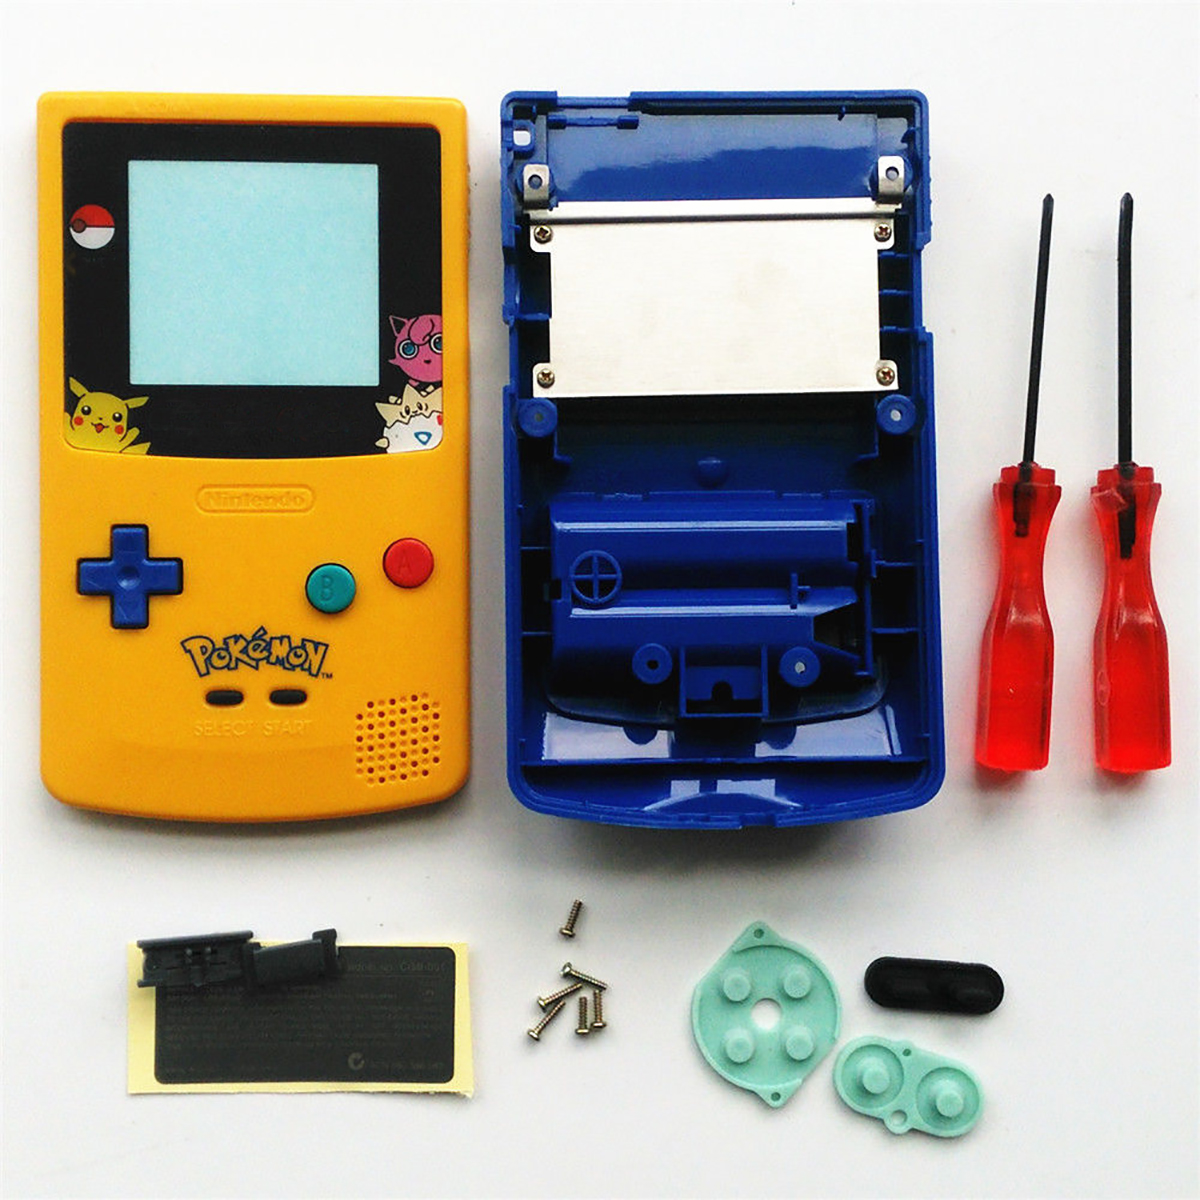 New Full Housing Shell Cover Repair Part Housing Shell Pack for Nintendo Game boy Color GBC 2 pieces brand new oem speakers for nintendo gameboy color gbc game boy advance gbc gba speaker page 5